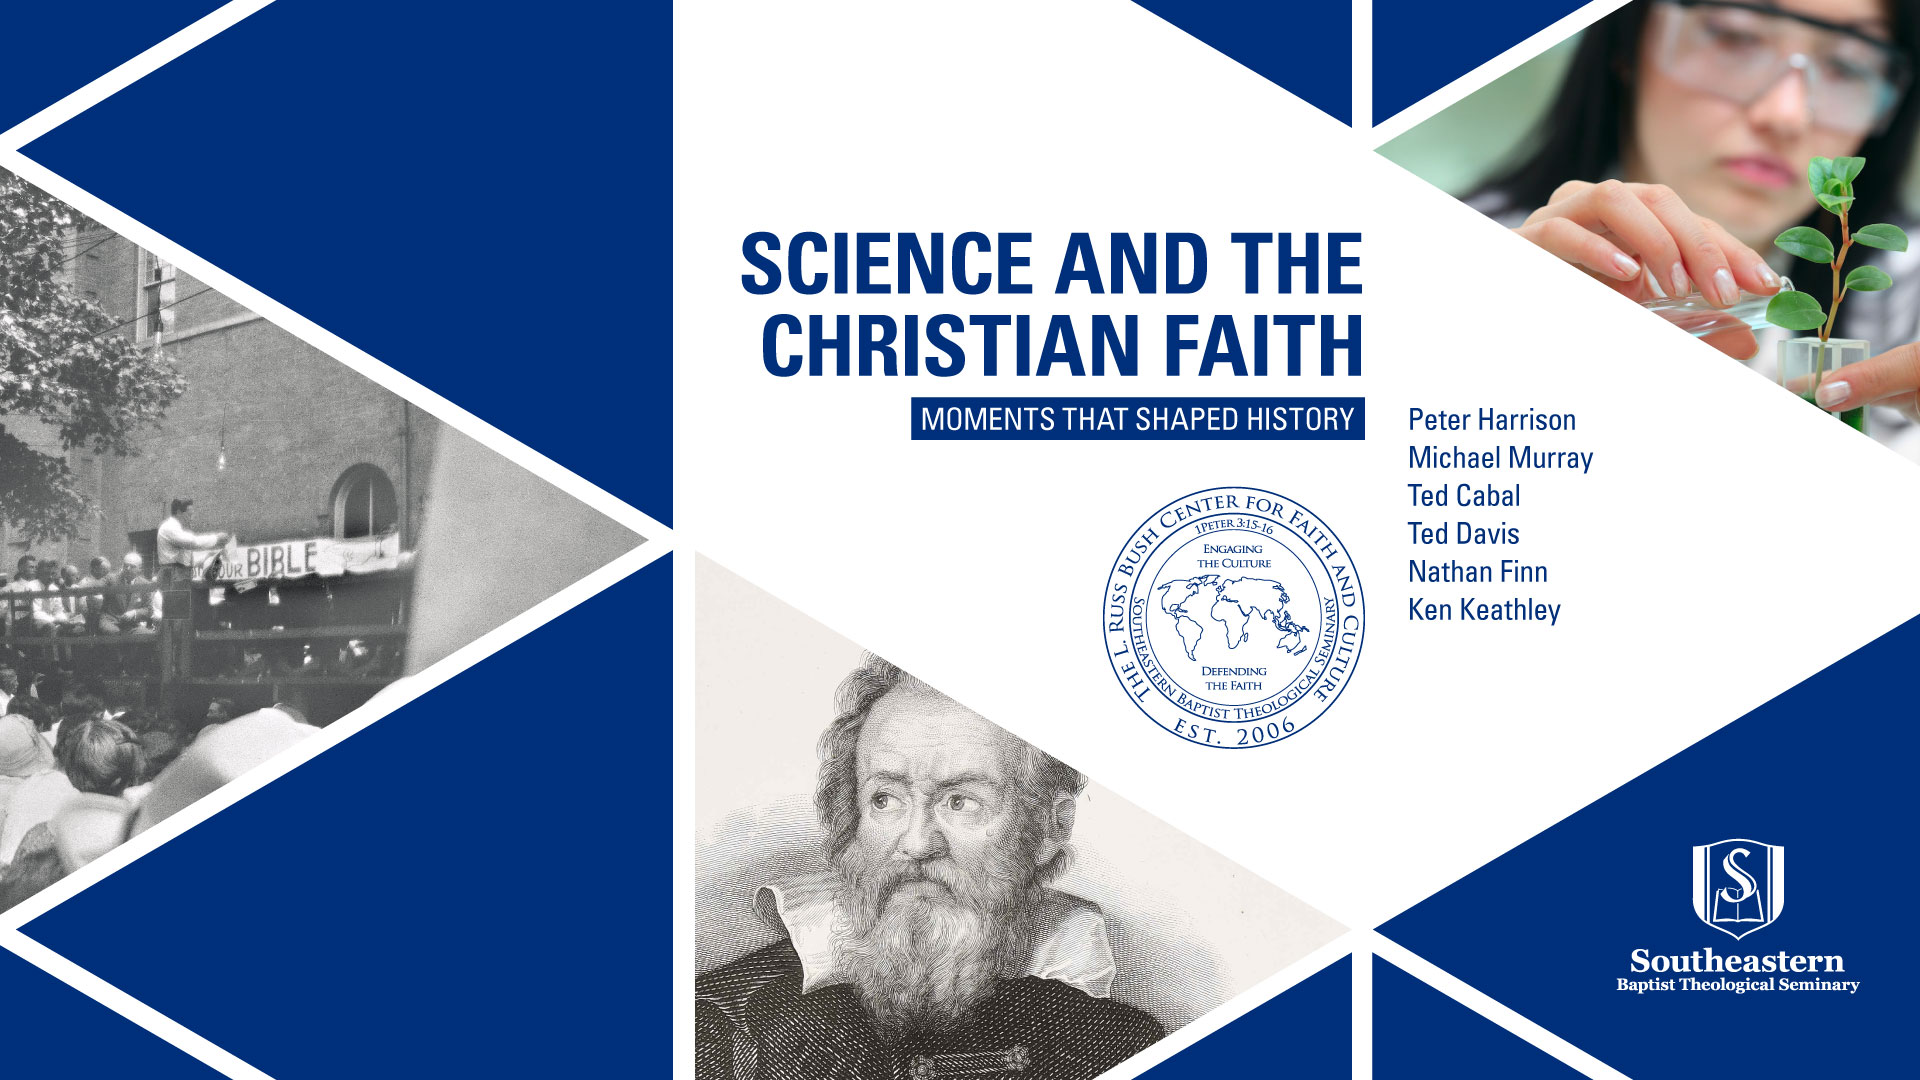 Science and the Christian Faith Conference at SEBTS